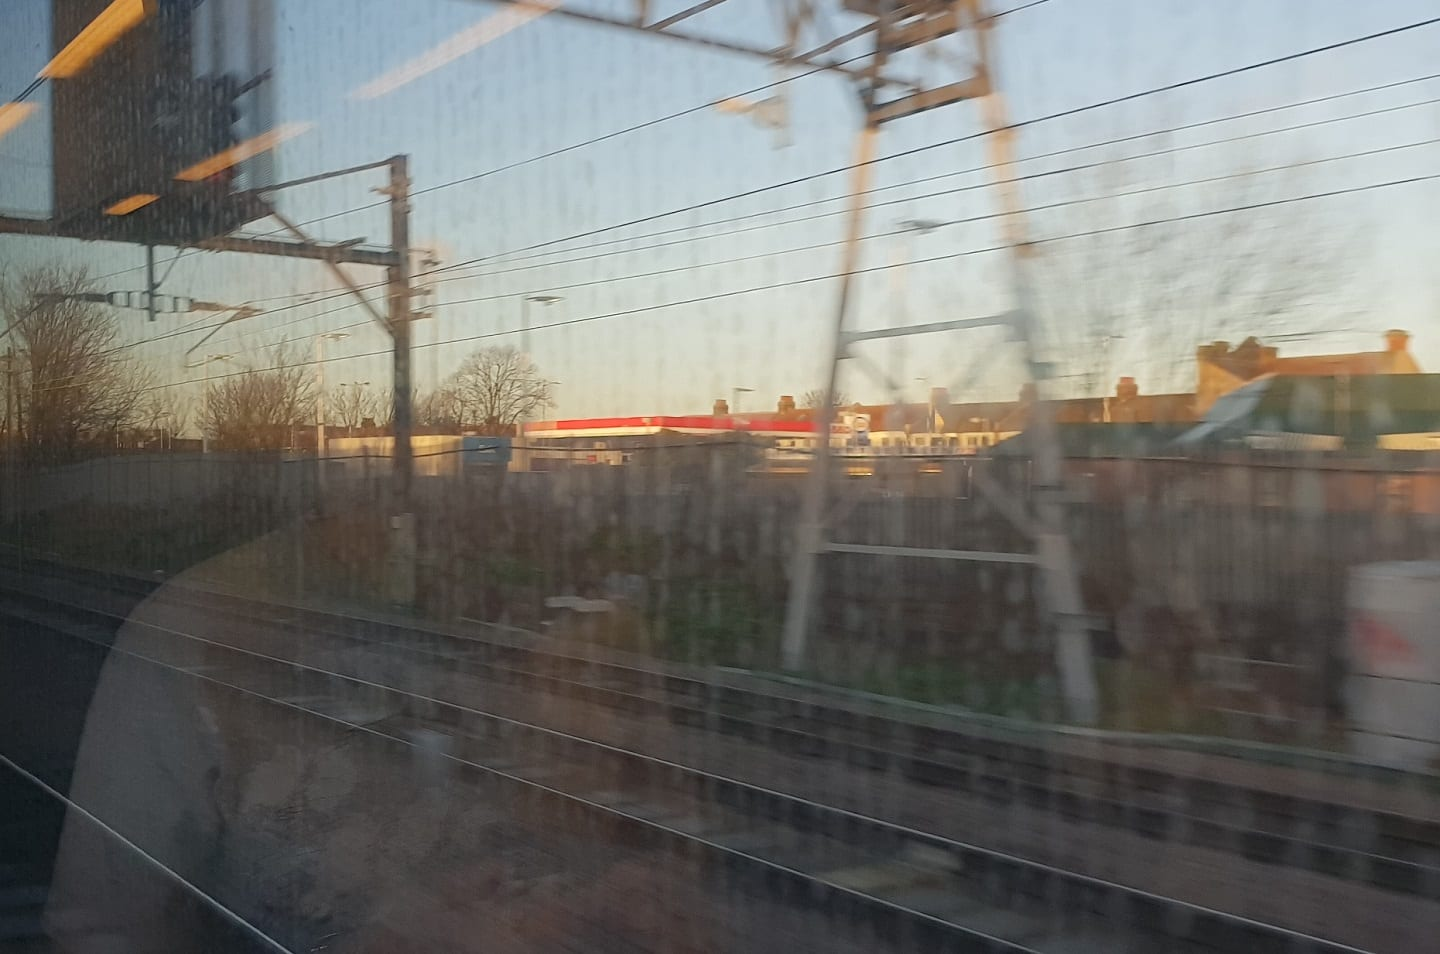 On the right track. Approaching London by train